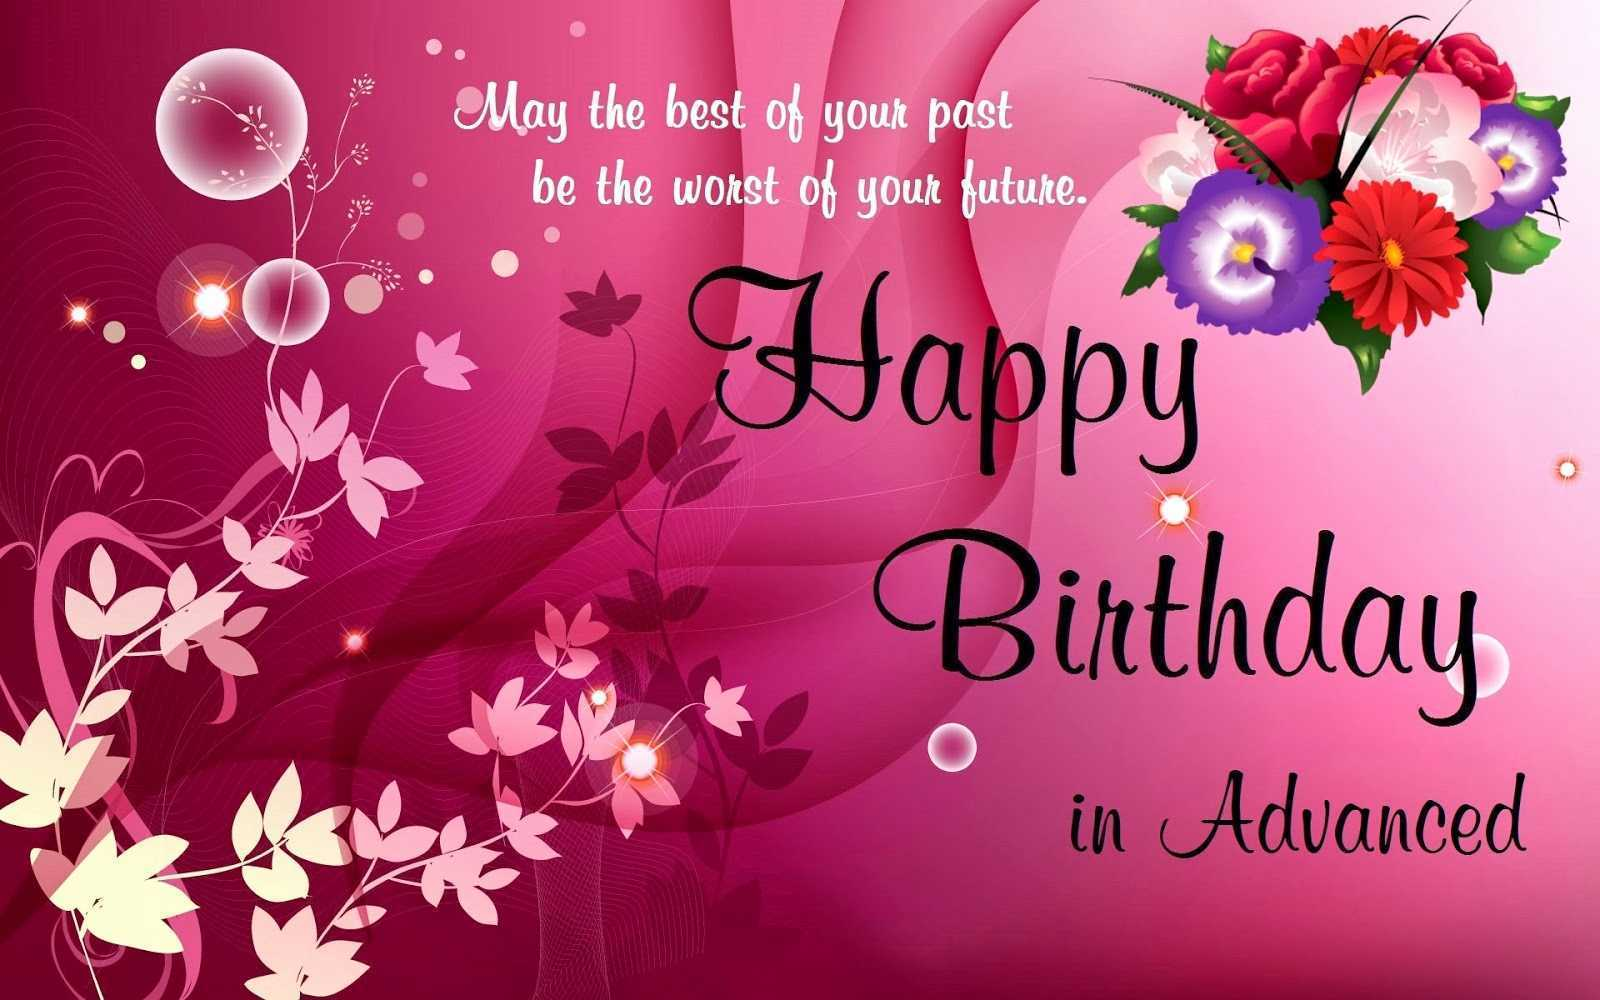 happy birthday english message ; happy-birthday-images-messages-unique-birthday-sms-in-hindi-in-marathi-for-friends-in-english-in-of-happy-birthday-images-messages